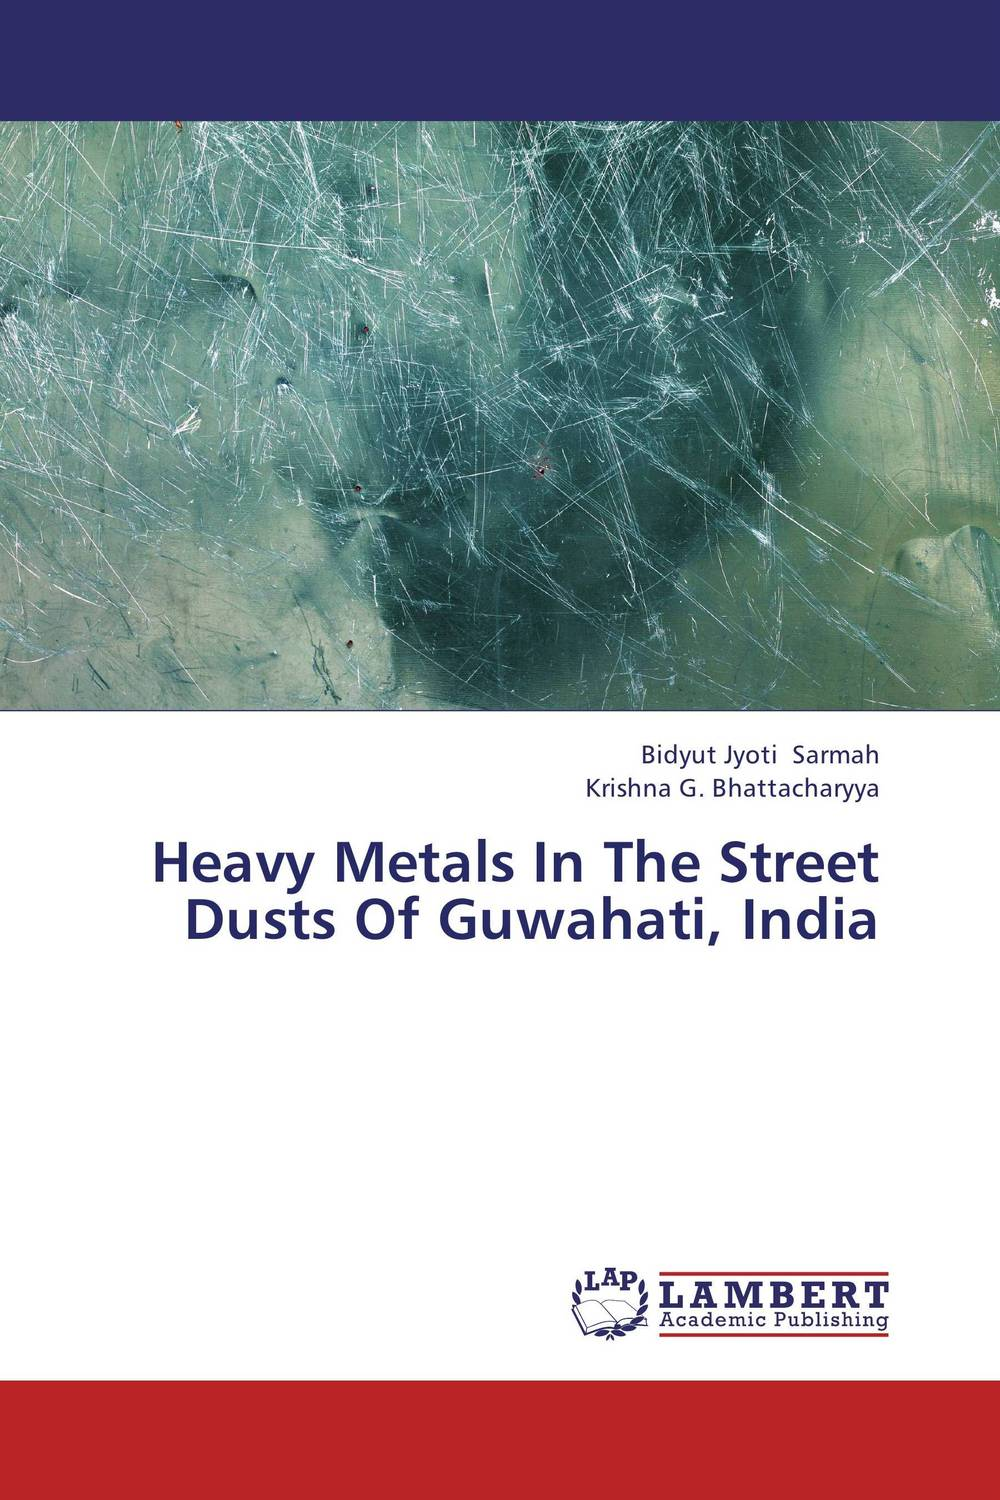 Heavy Metals In The Street Dusts Of Guwahati, India highsmith p found in the street